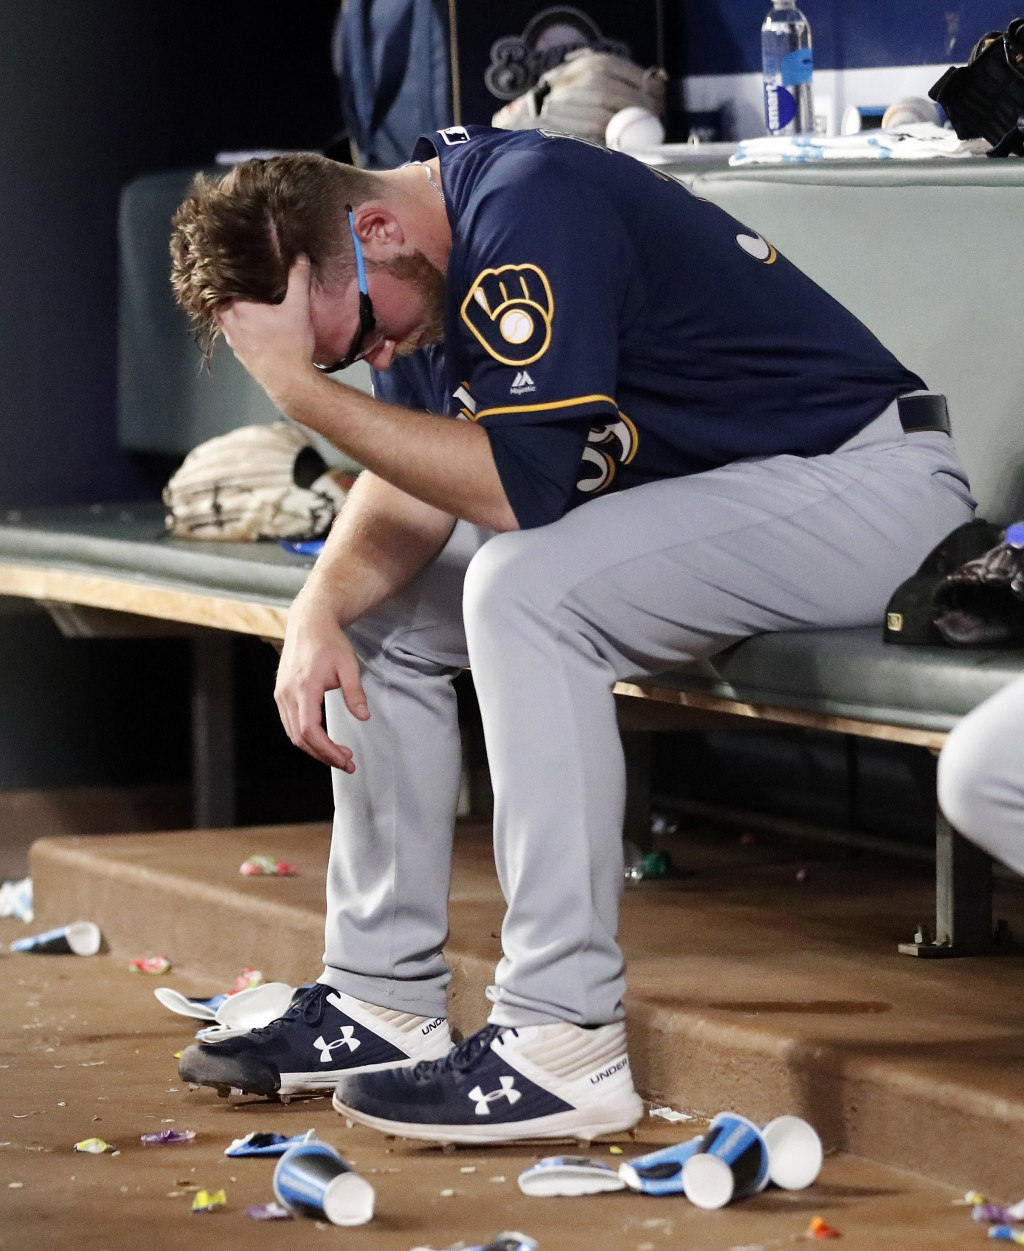 Milwaukee Brewers starting pitcher Corbin Burnes sits on the bench after being removed during the sixth inning of the team's baseball game against the